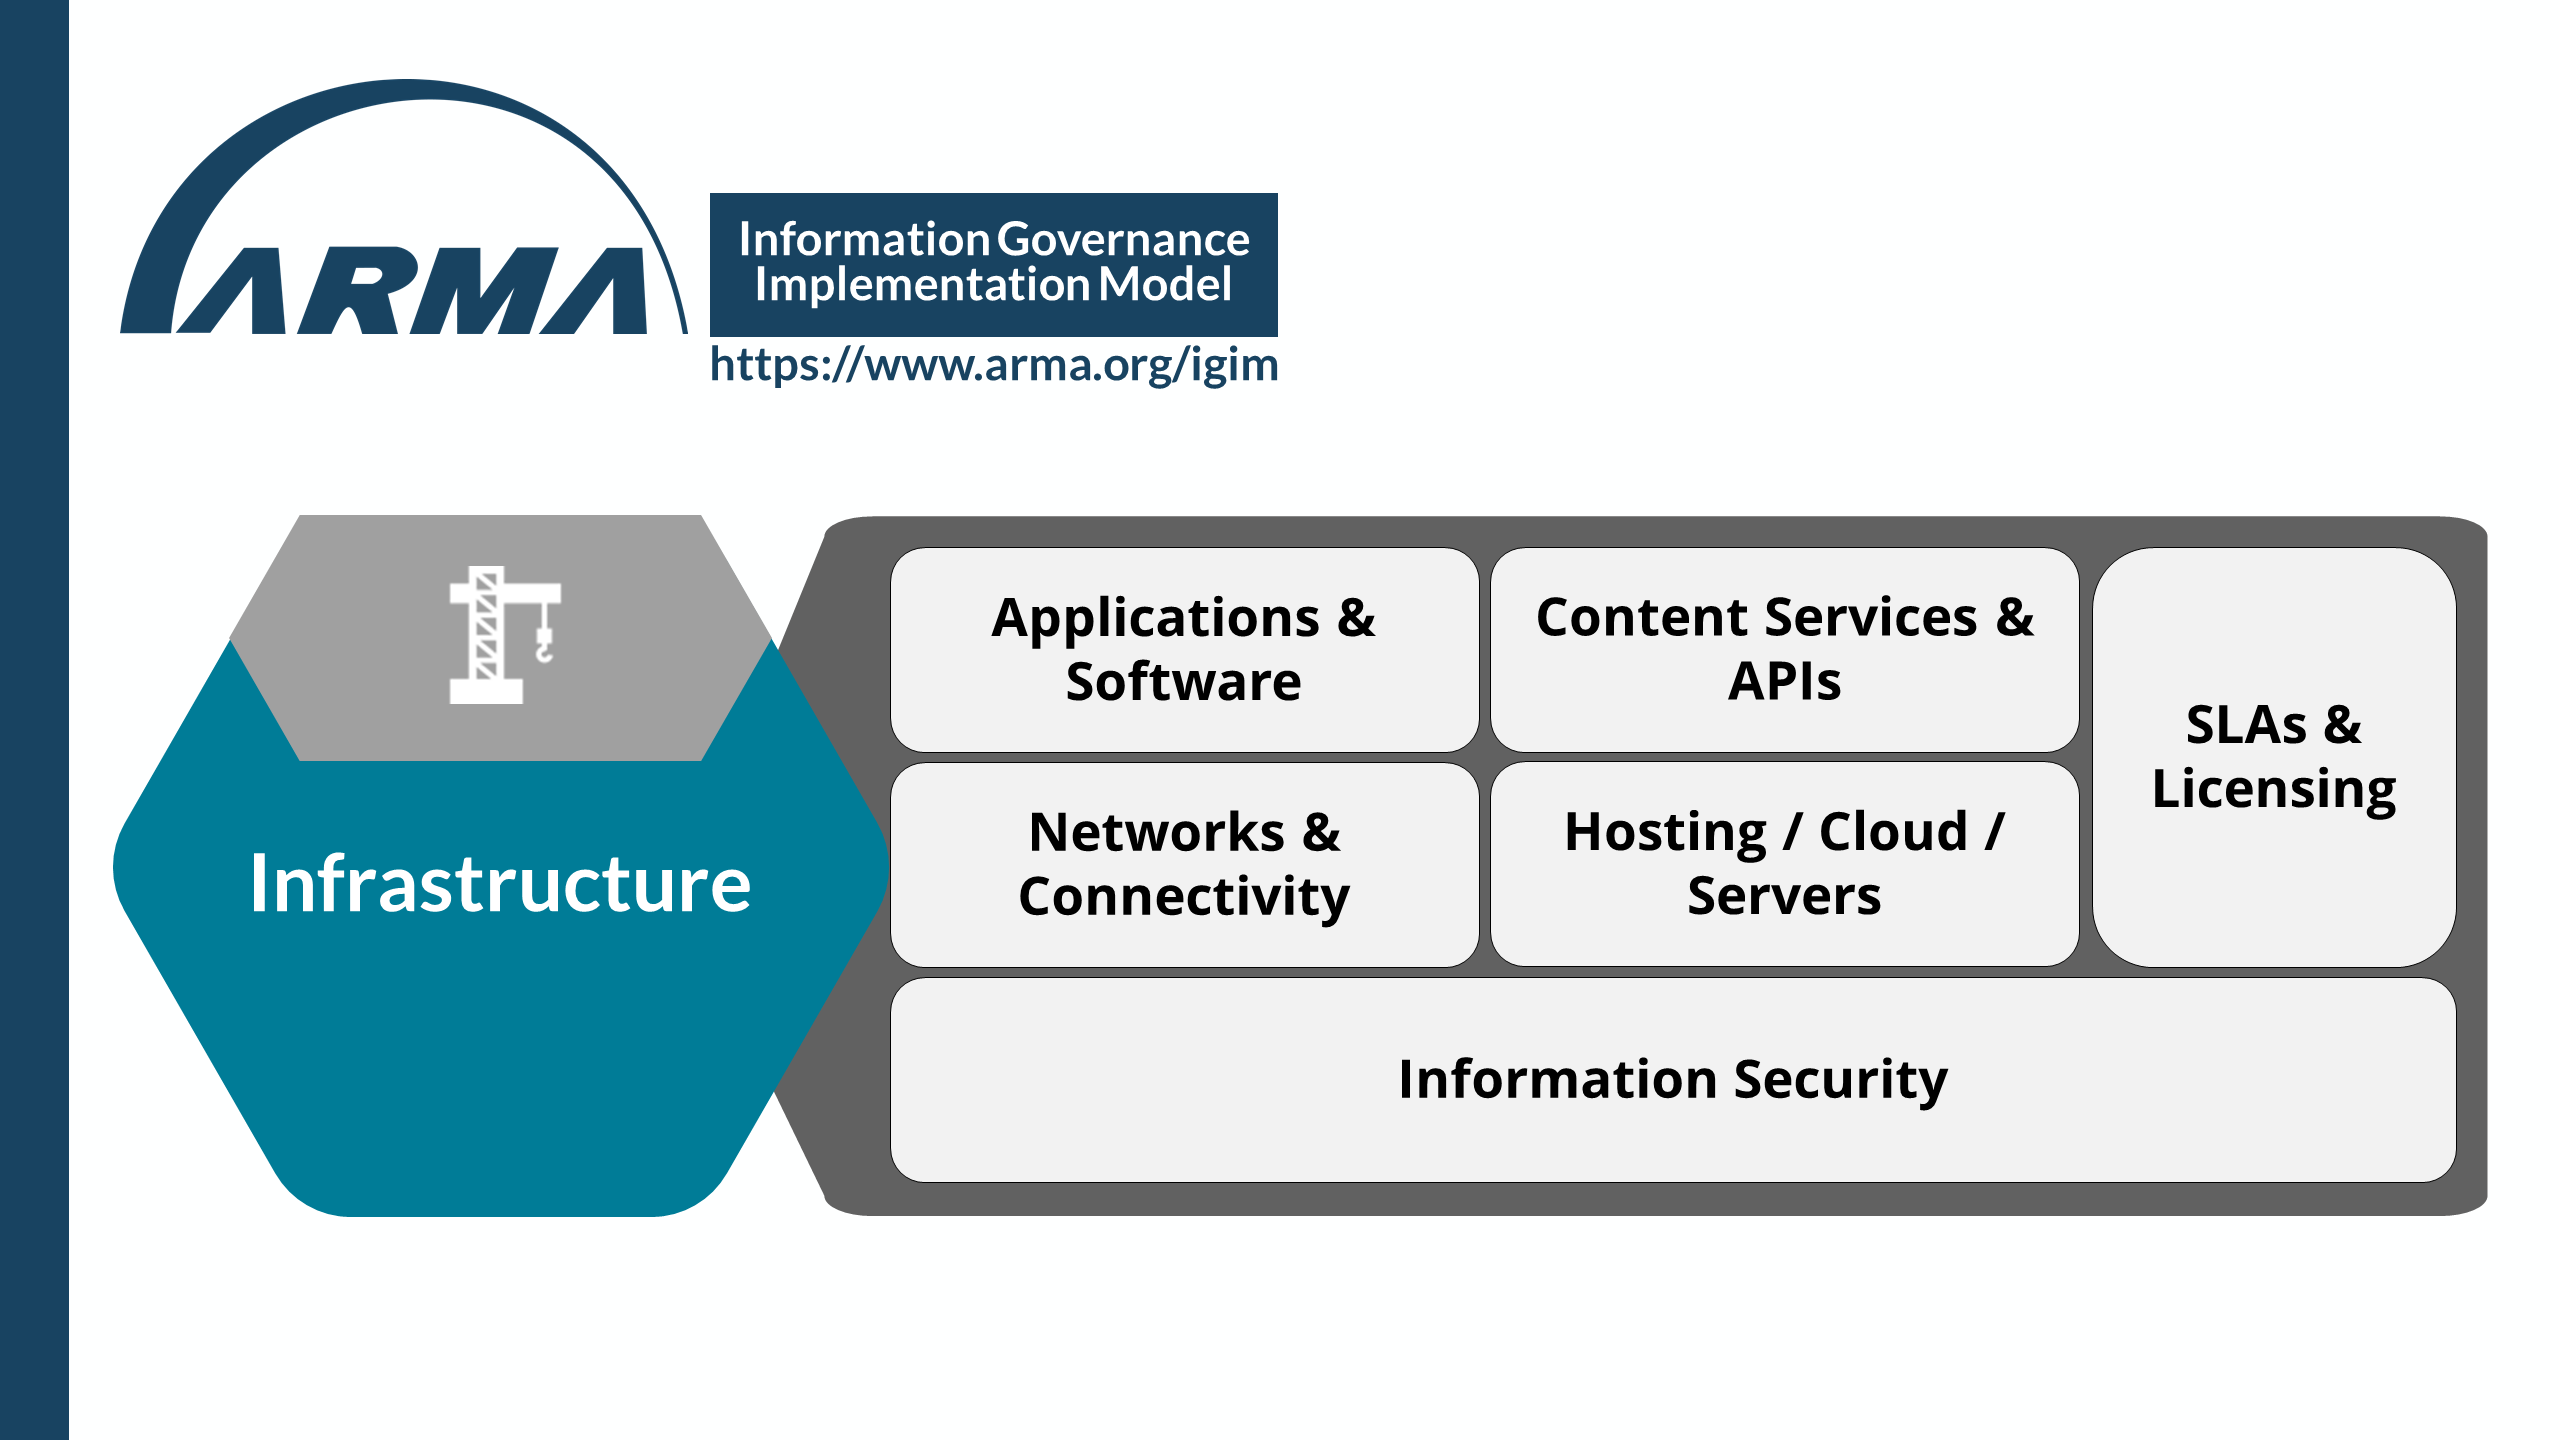 Information Governance Implementation Model - Infrastructure